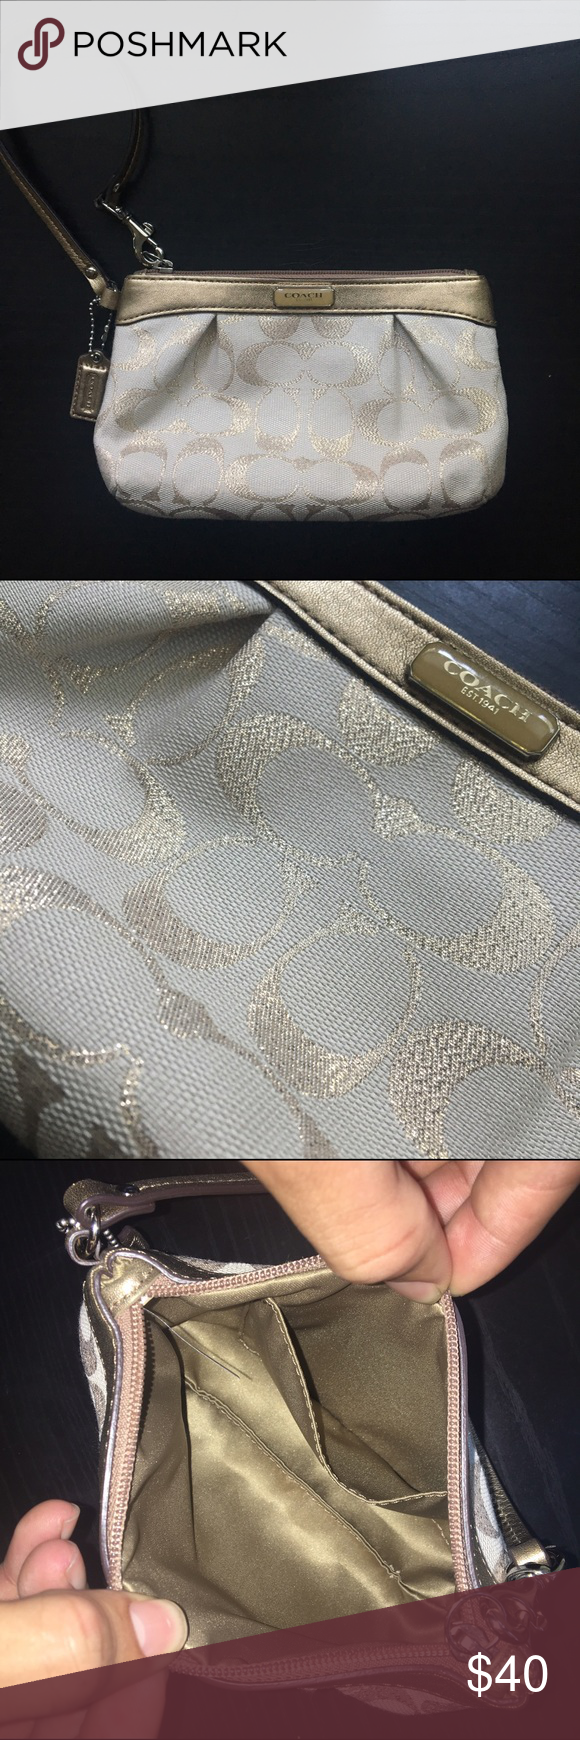 "Coach Gold and Cream Signature ""C"" Wristlet New without tags. Never been used. 100% authentic. Care instructions included. Coach signature jacquard fabric. 100% genuine leather trim. Full zip top closure. Coach signature leather hang tag. 12"" leather strap with clip. Satin interior lining. 8"" (L) x 5"" (H). Smoke free home. Coach Bags Clutches & Wristlets"